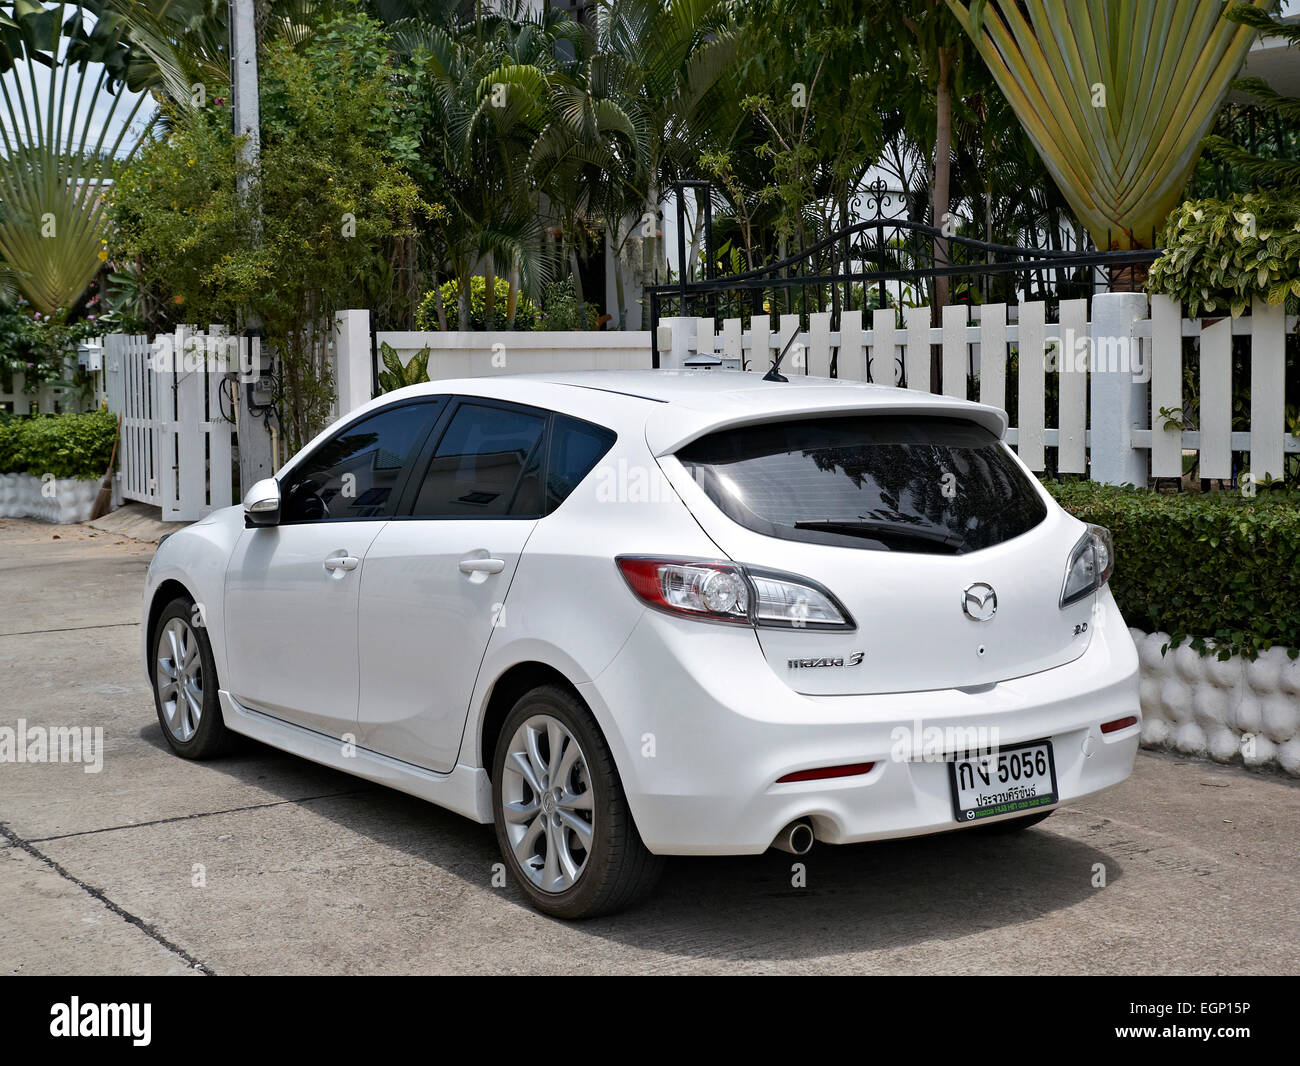 White Mazda 3 hatchback car - Stock Image